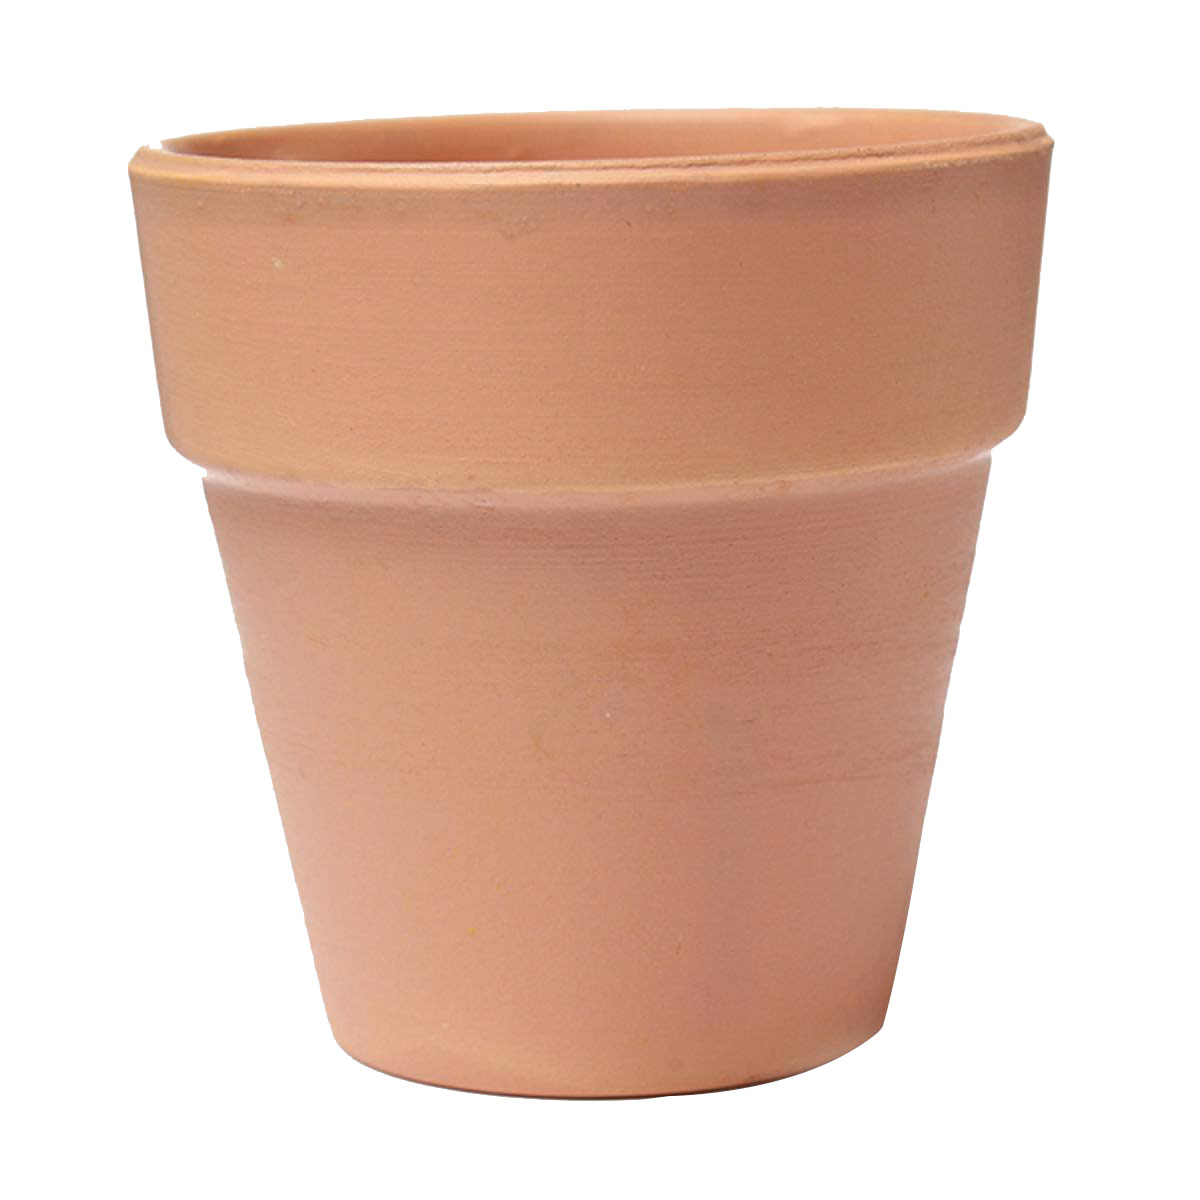 online buy wholesale terracotta pots from china terracotta